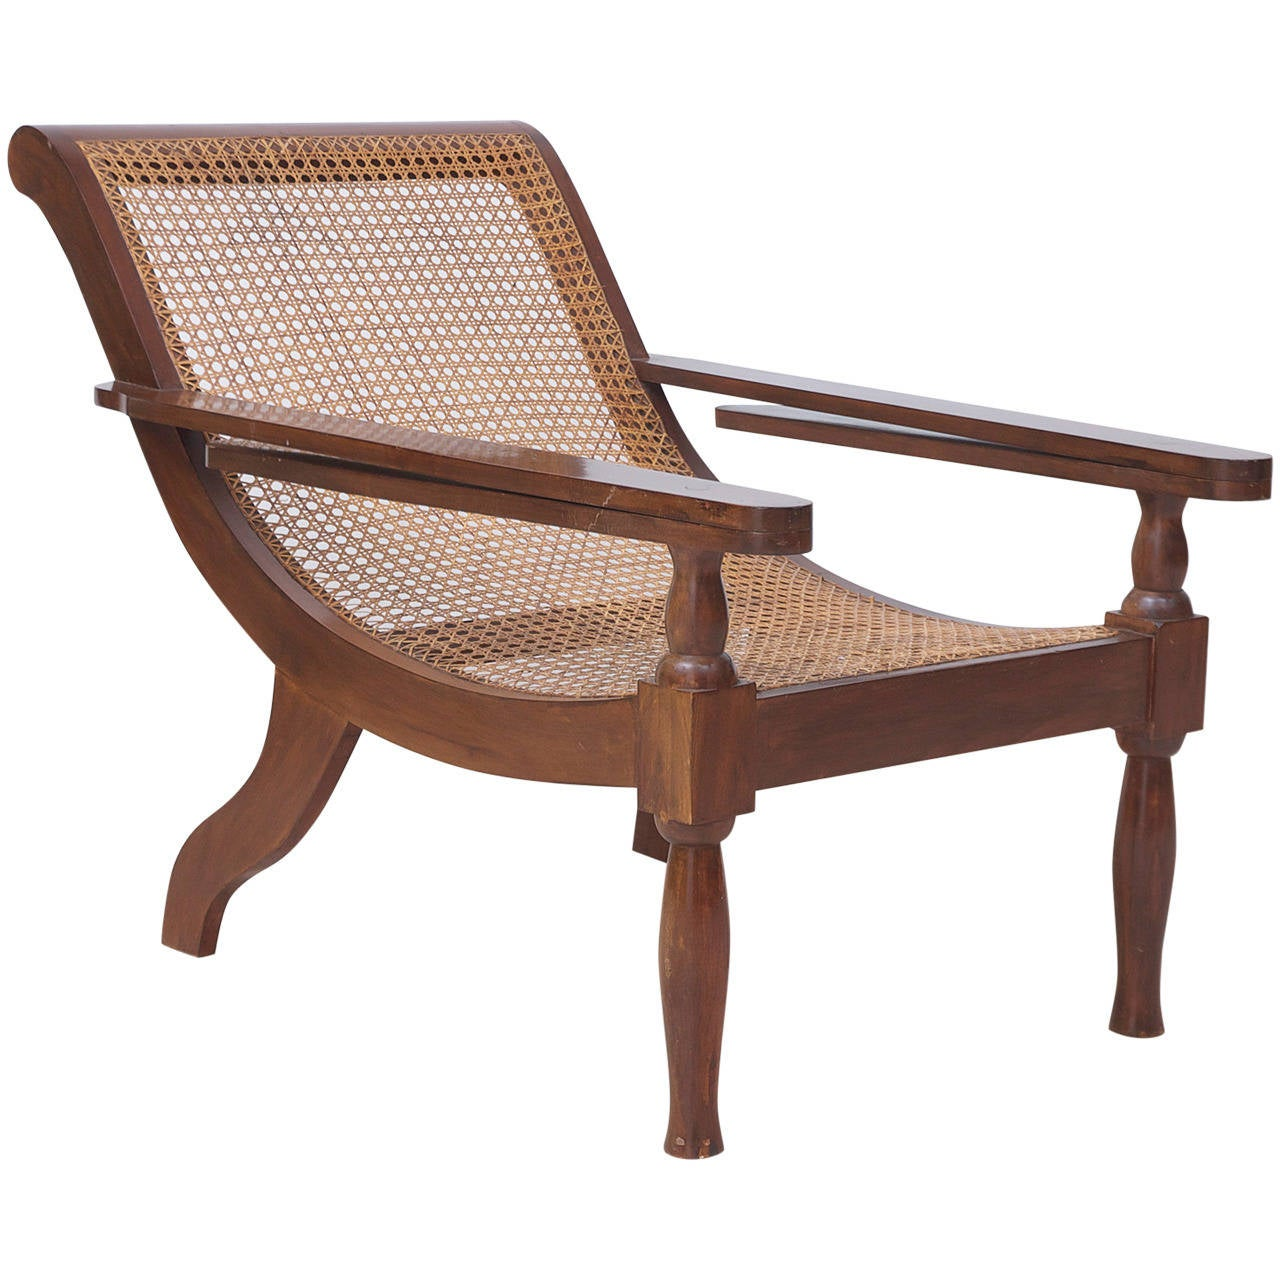 West Indies Planters Chair in Mahogany with Caning 1 - West Indies Planters Chair In Mahogany With Caning For Sale At 1stdibs